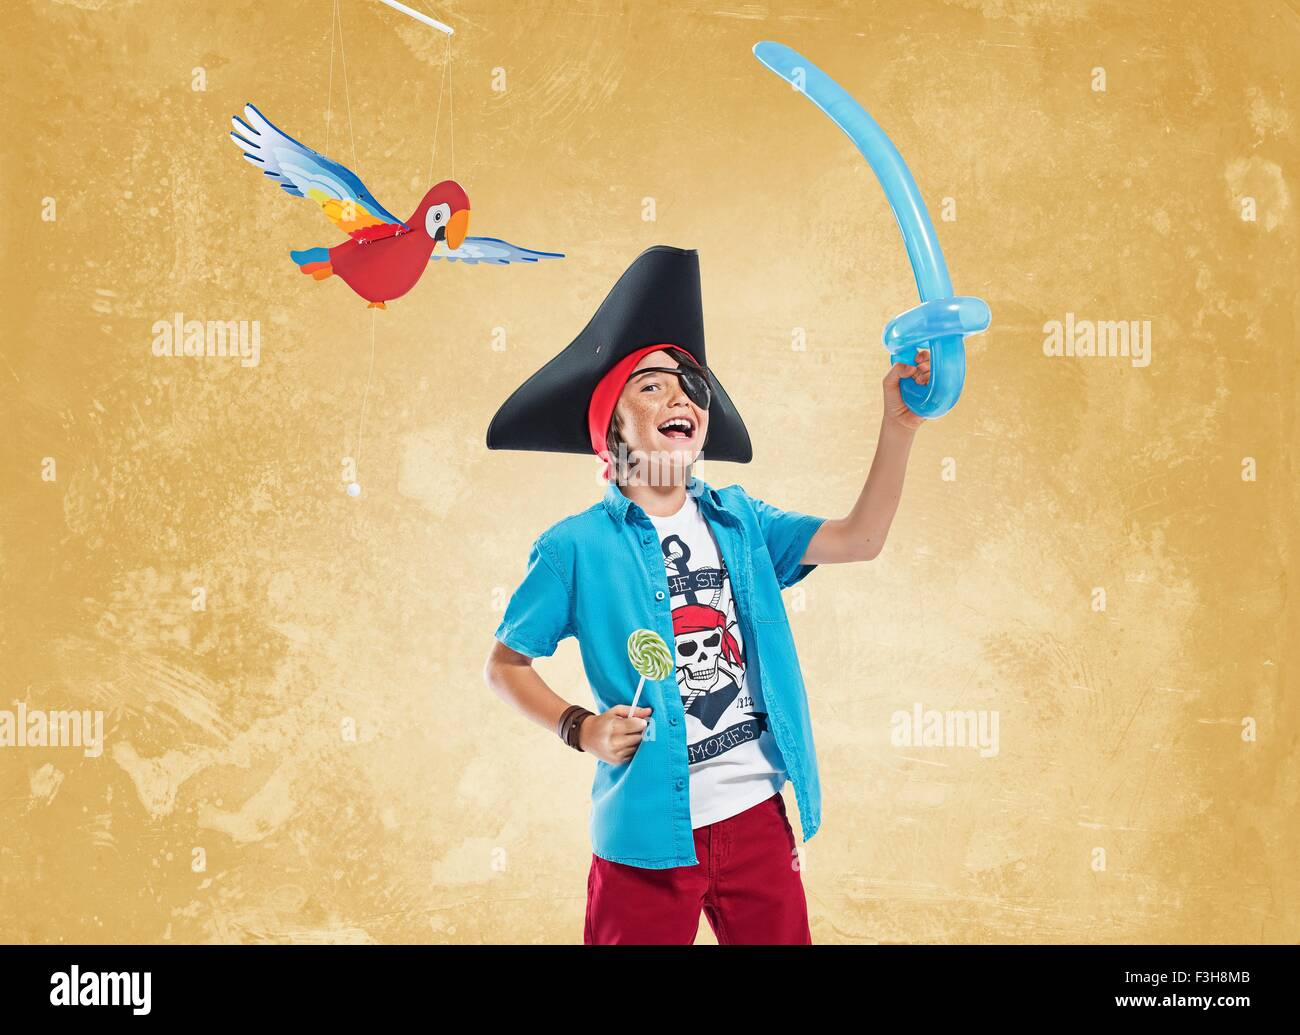 Boy wearing pirate costume and eye patch holding balloon sword and lollipop, looking at camera smiling Stock Photo